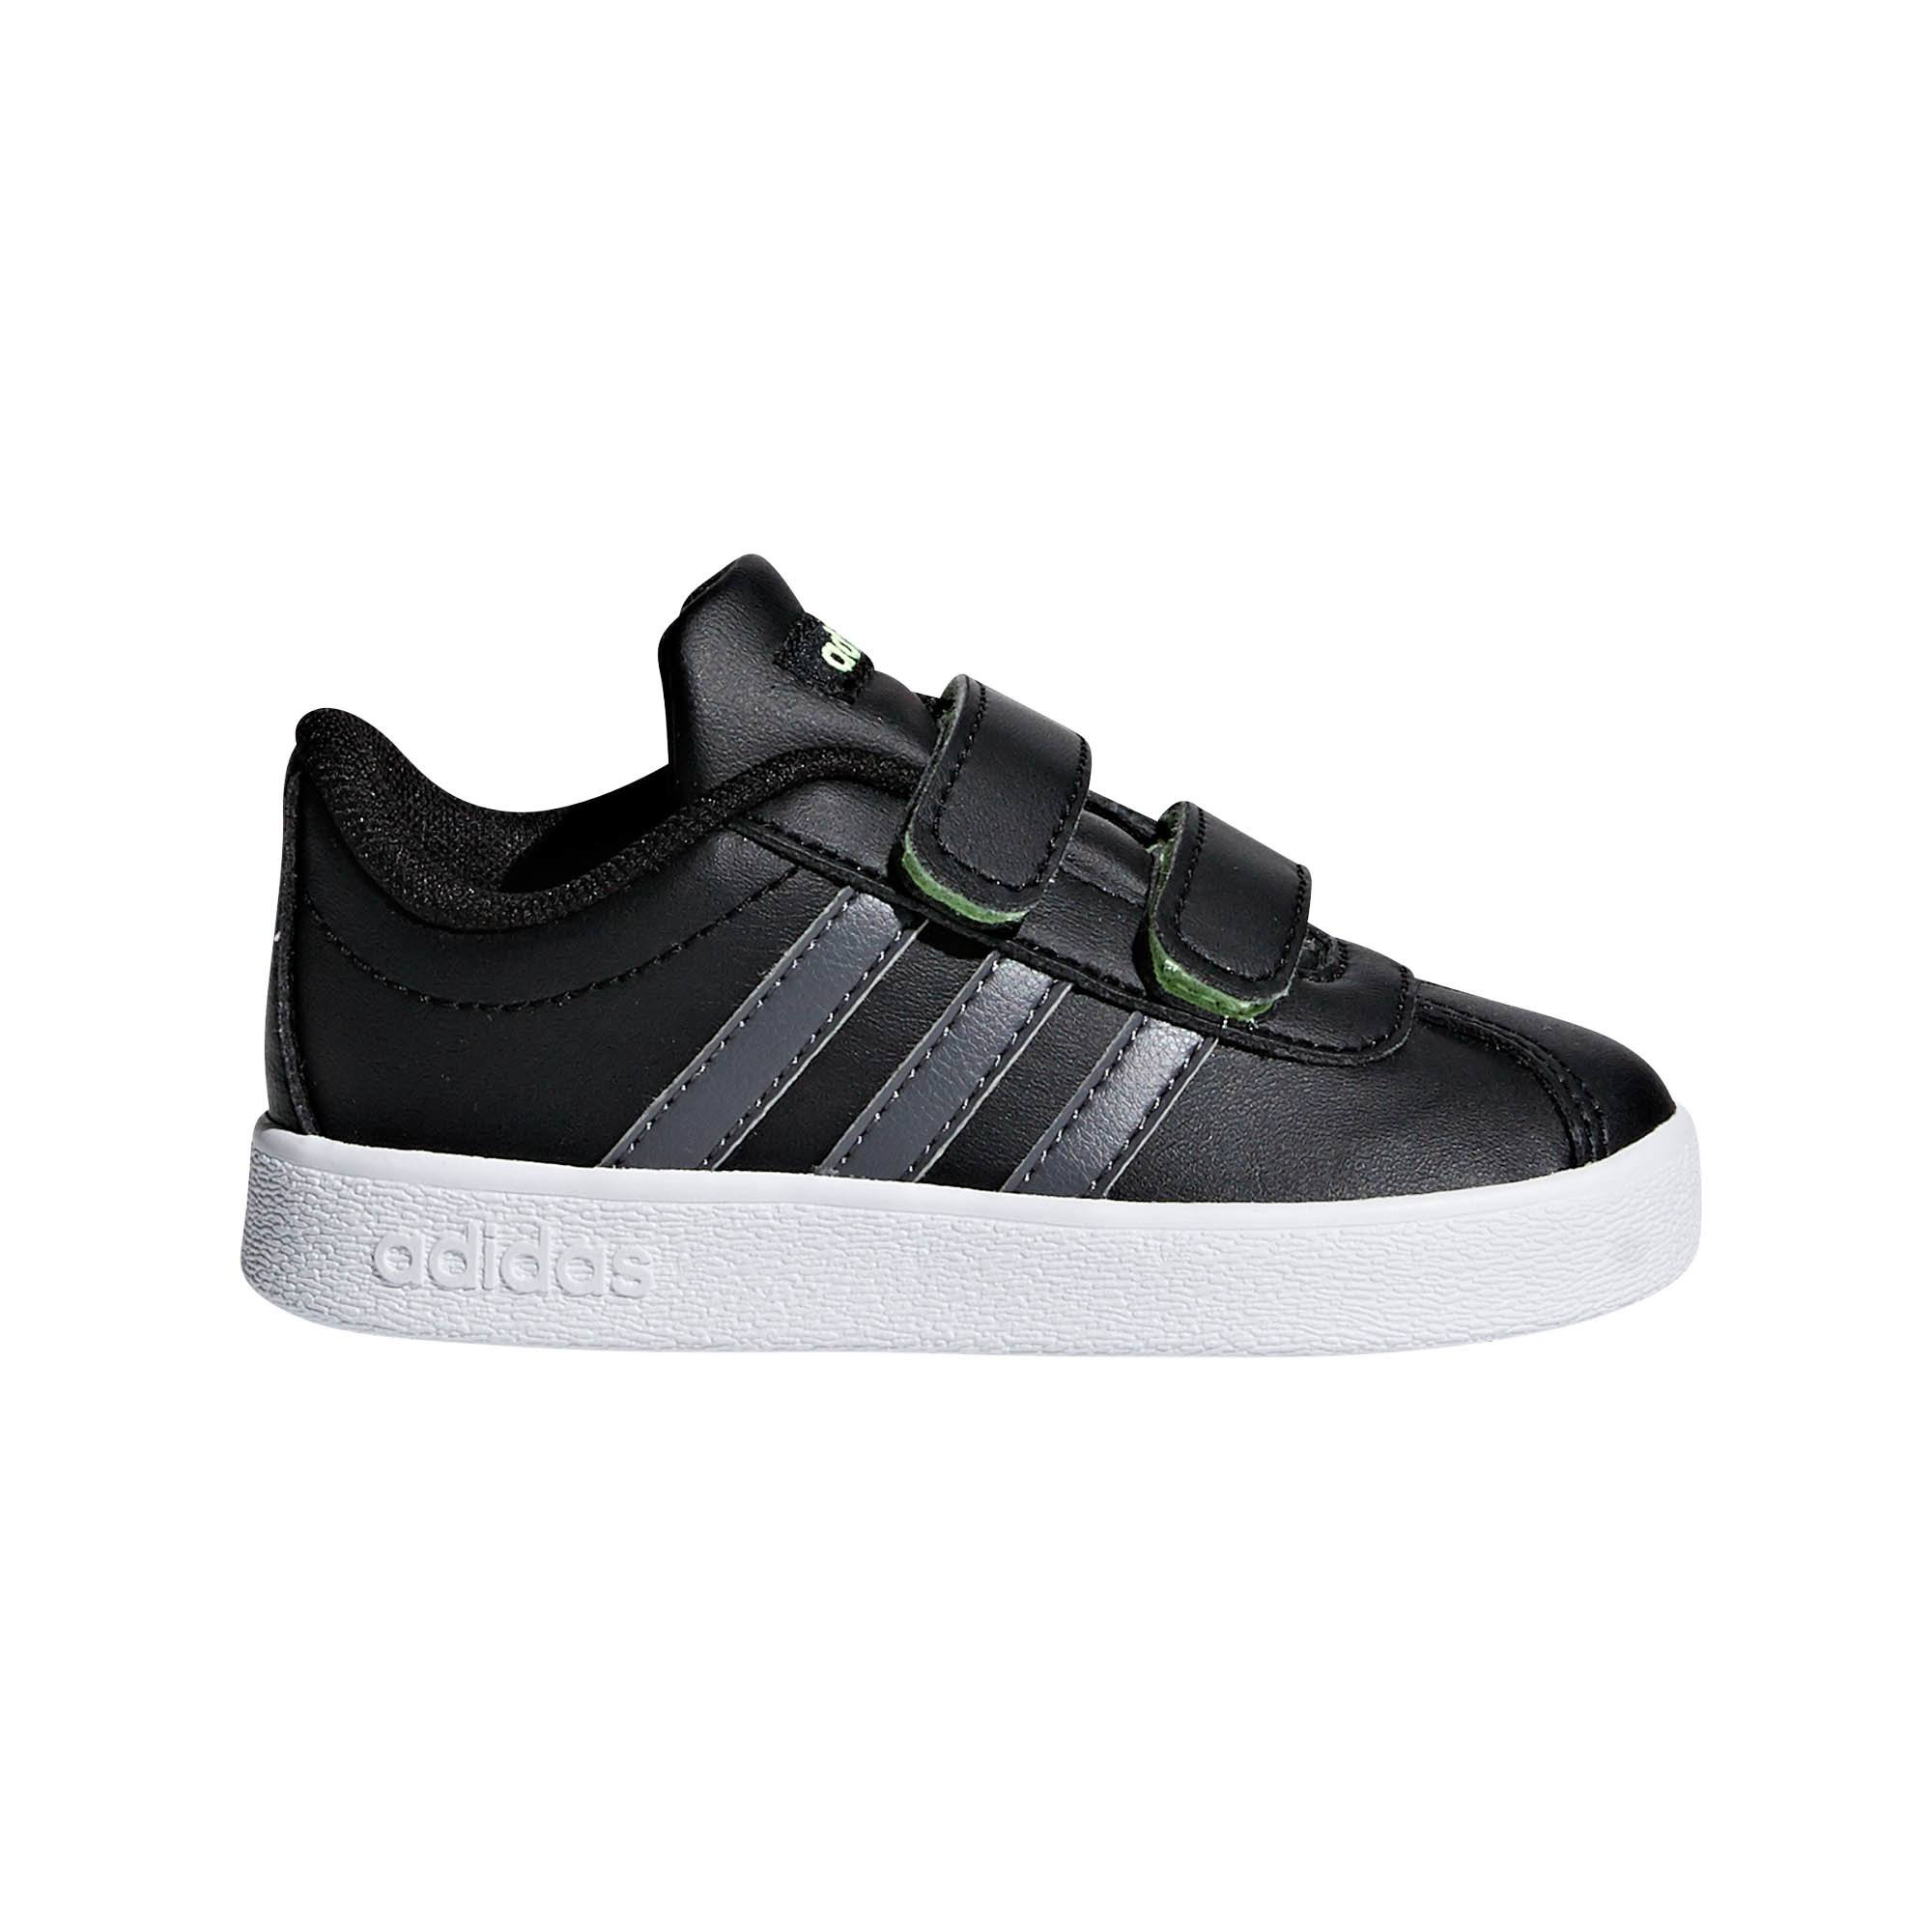 Adidas VL Court 2.0 Infant Trainer Black - UK 9